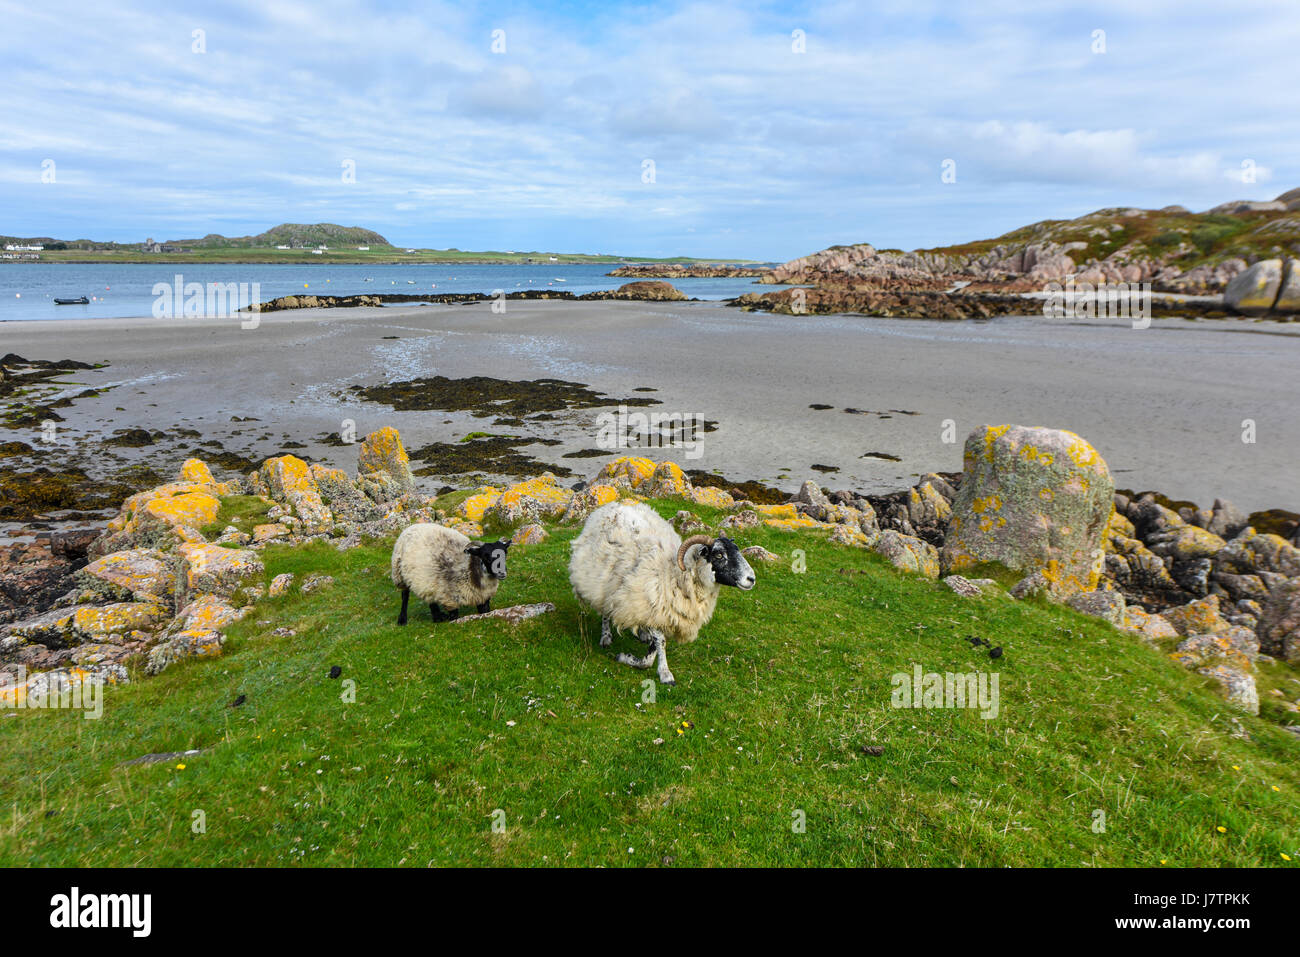 Sheep coming from the beach, Isle of Mull, Scotland, United Kingdom - Stock Image